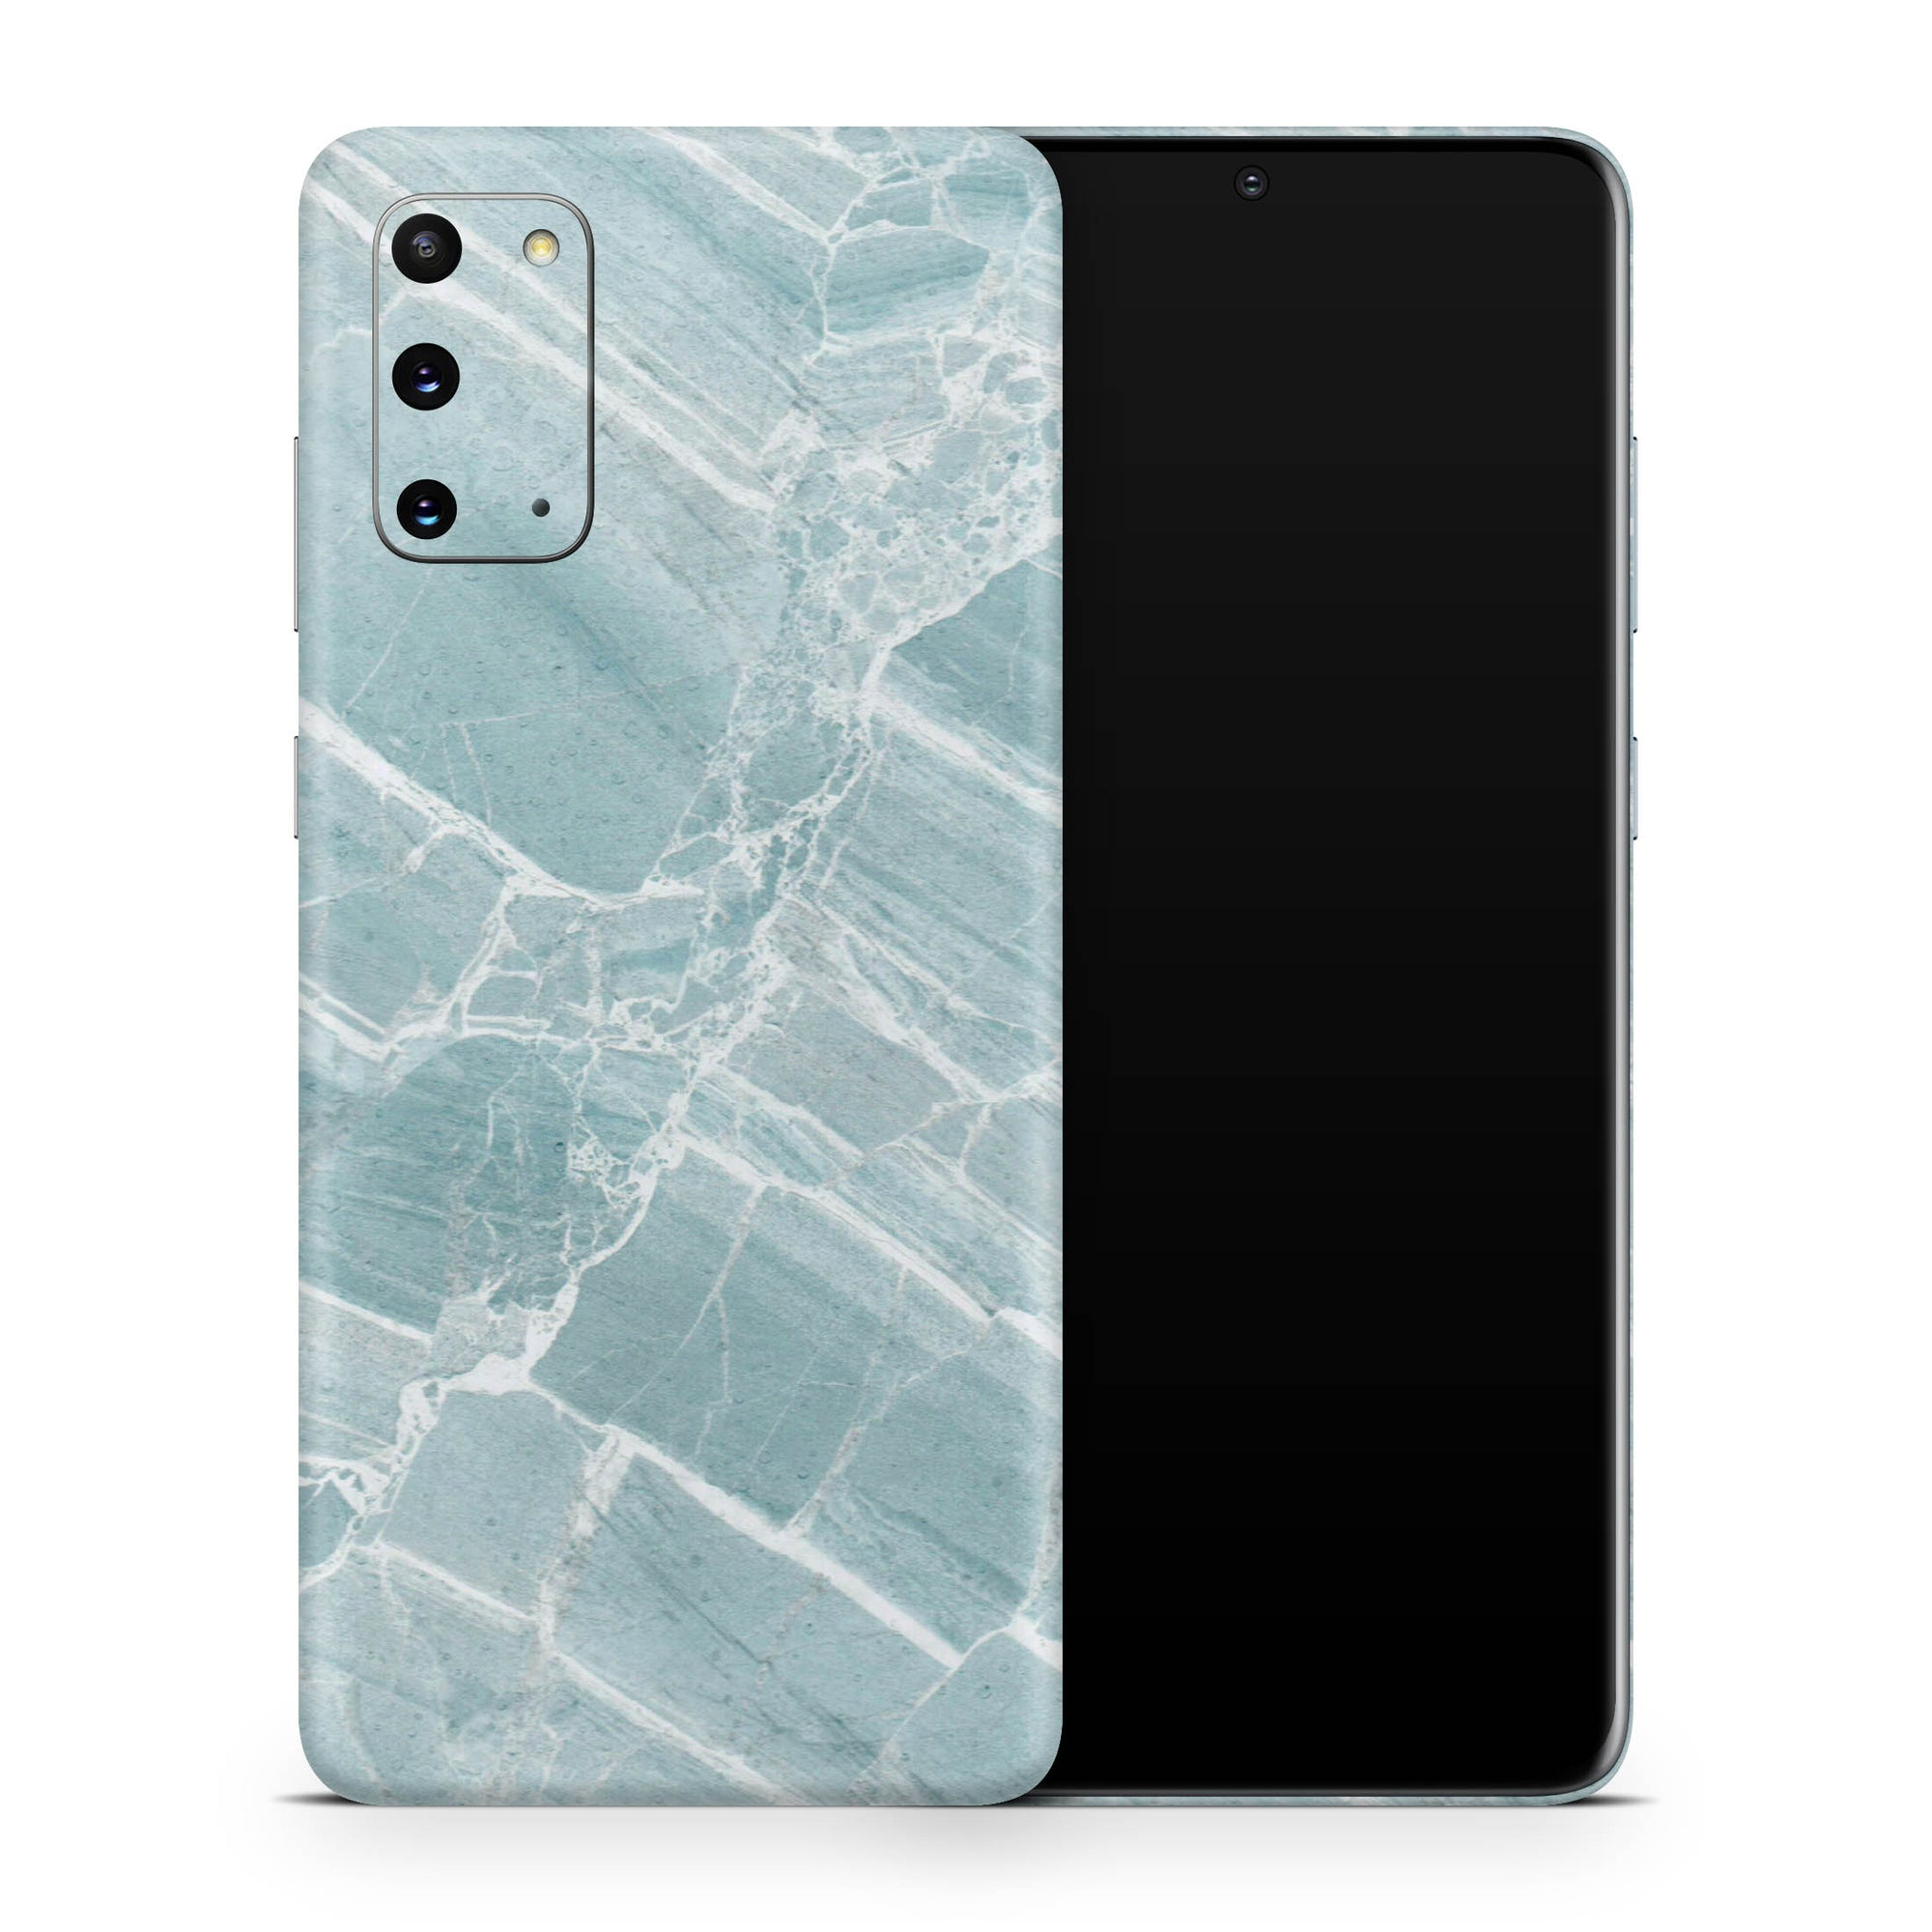 Mint Marble Galaxy S20 Skin + Case-Uniqfind